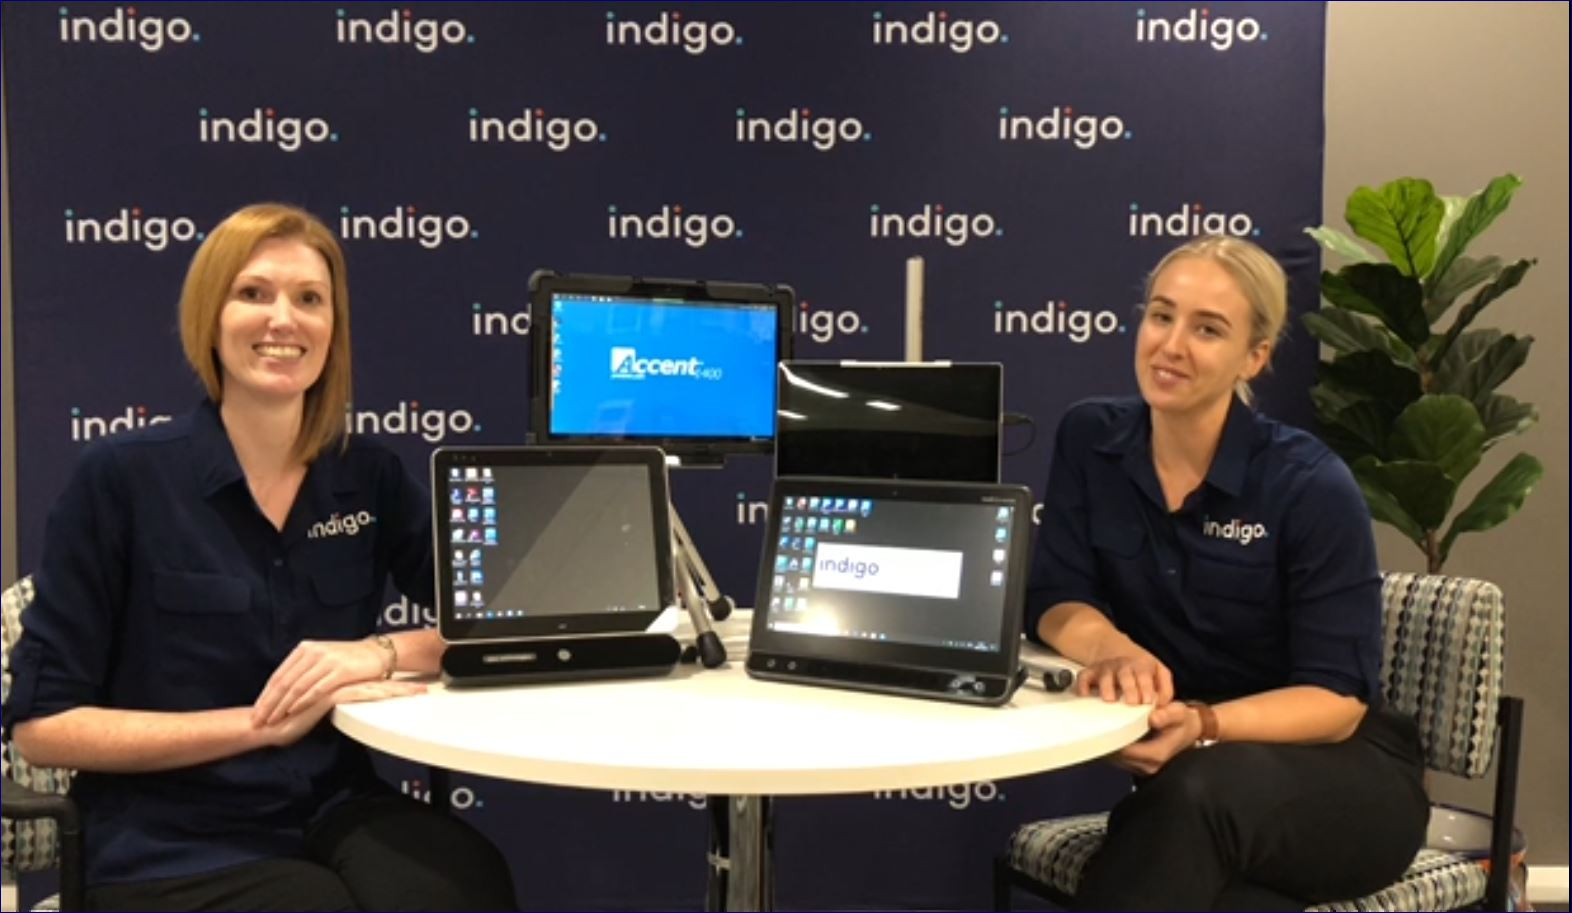 Speech Pathologists Tanith and Michelle with some Eye Gaze devices, Smiling professional women wearing Indigo uniforms seated at a table with AAC AT